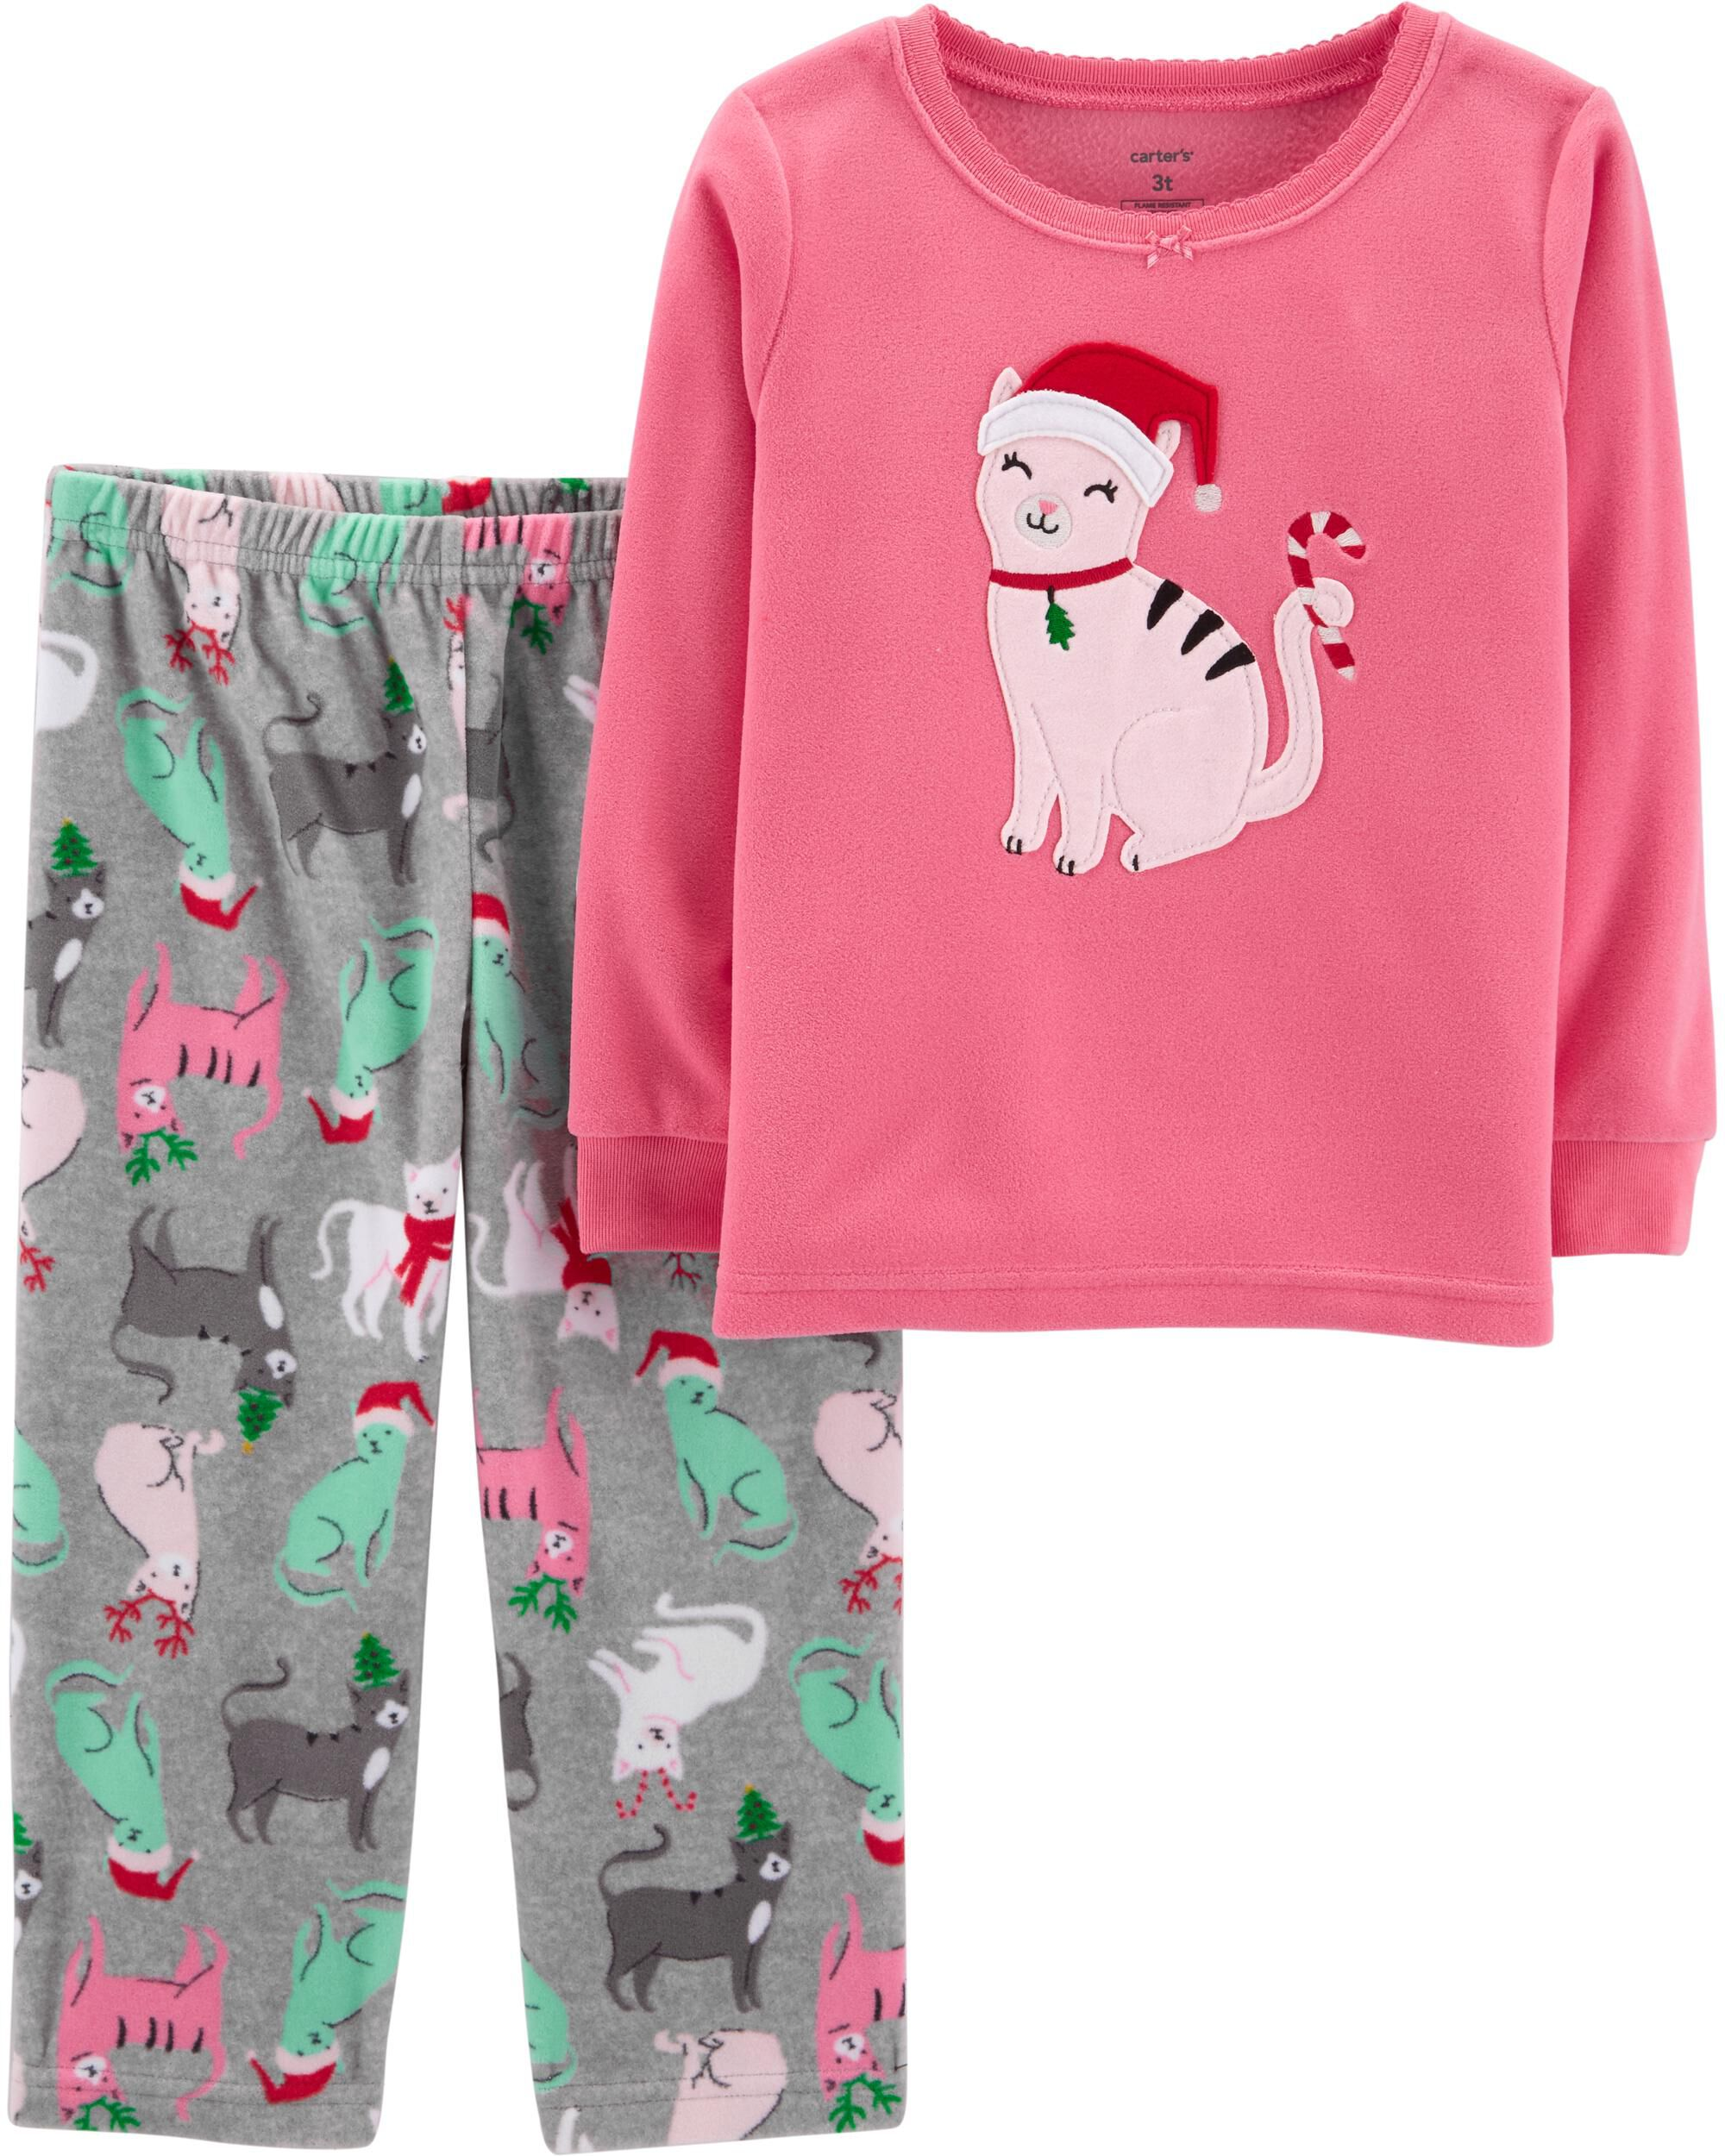 2 piece christmas cat fleece pjs loading zoom